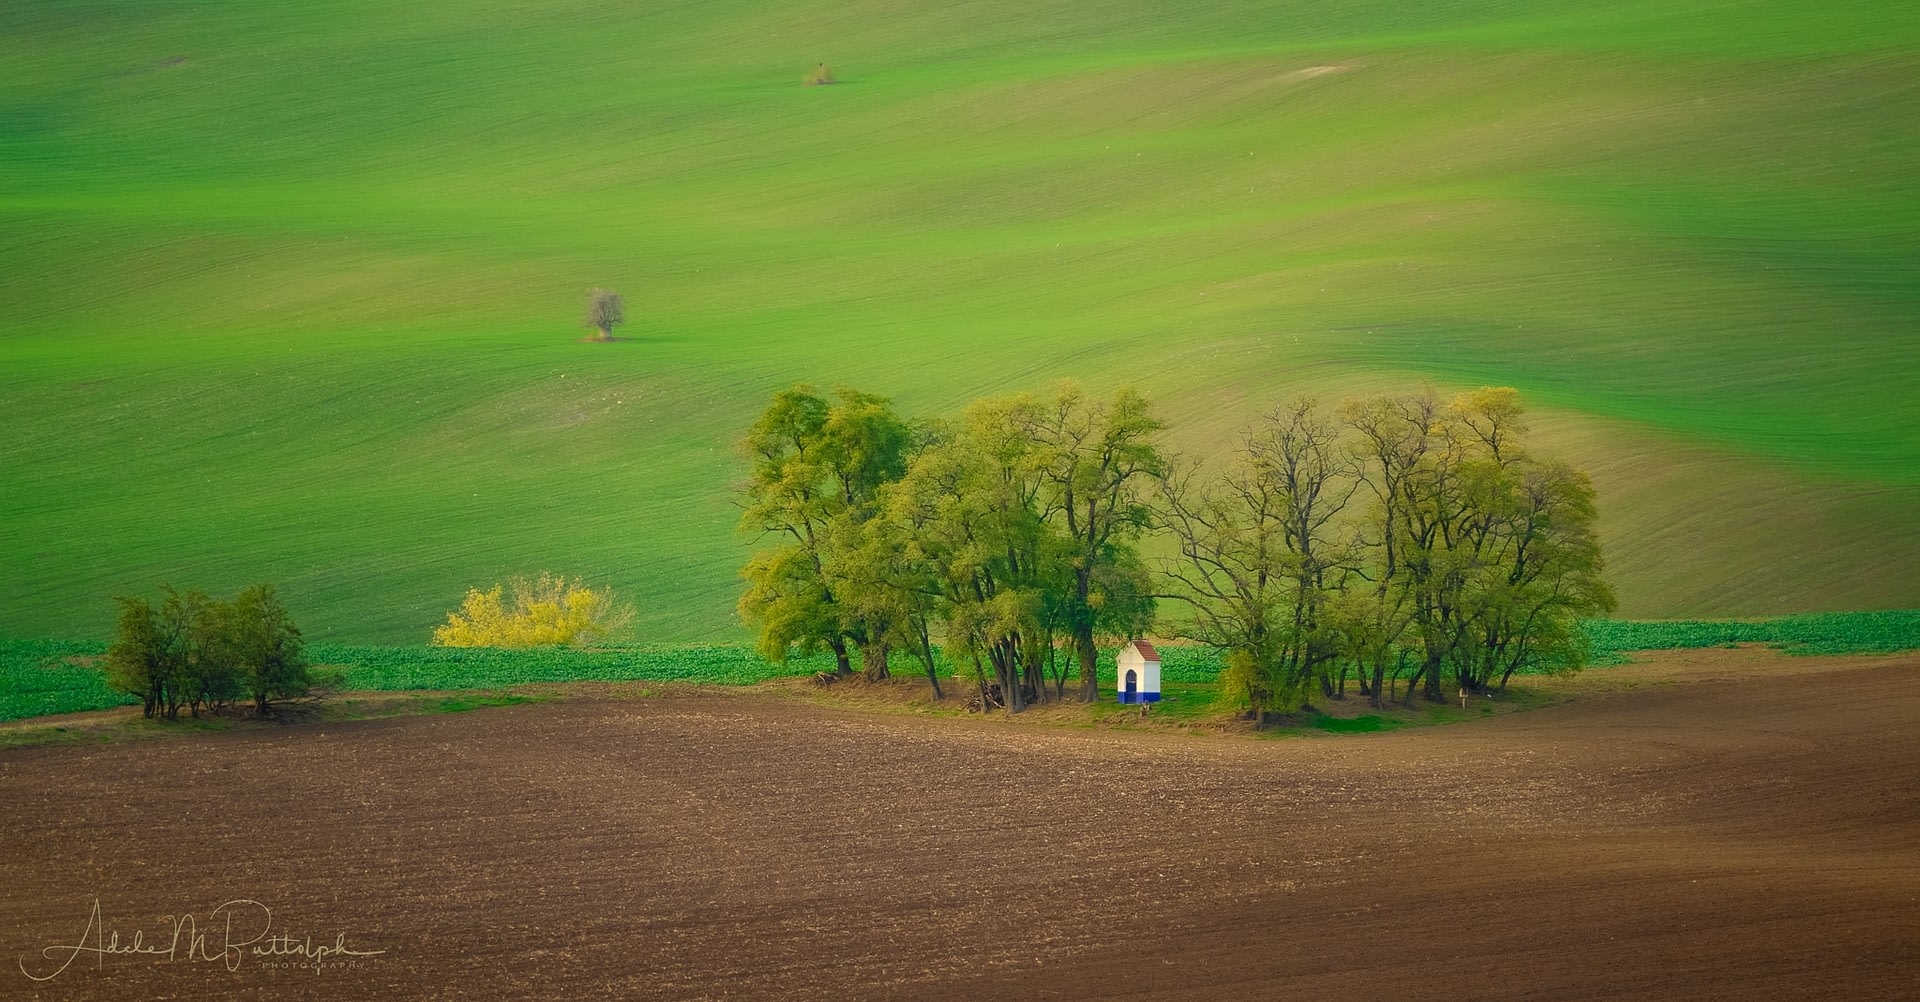 Saint Barbara Chapel sits in a grove of trees, Moravia, Czech Republic.